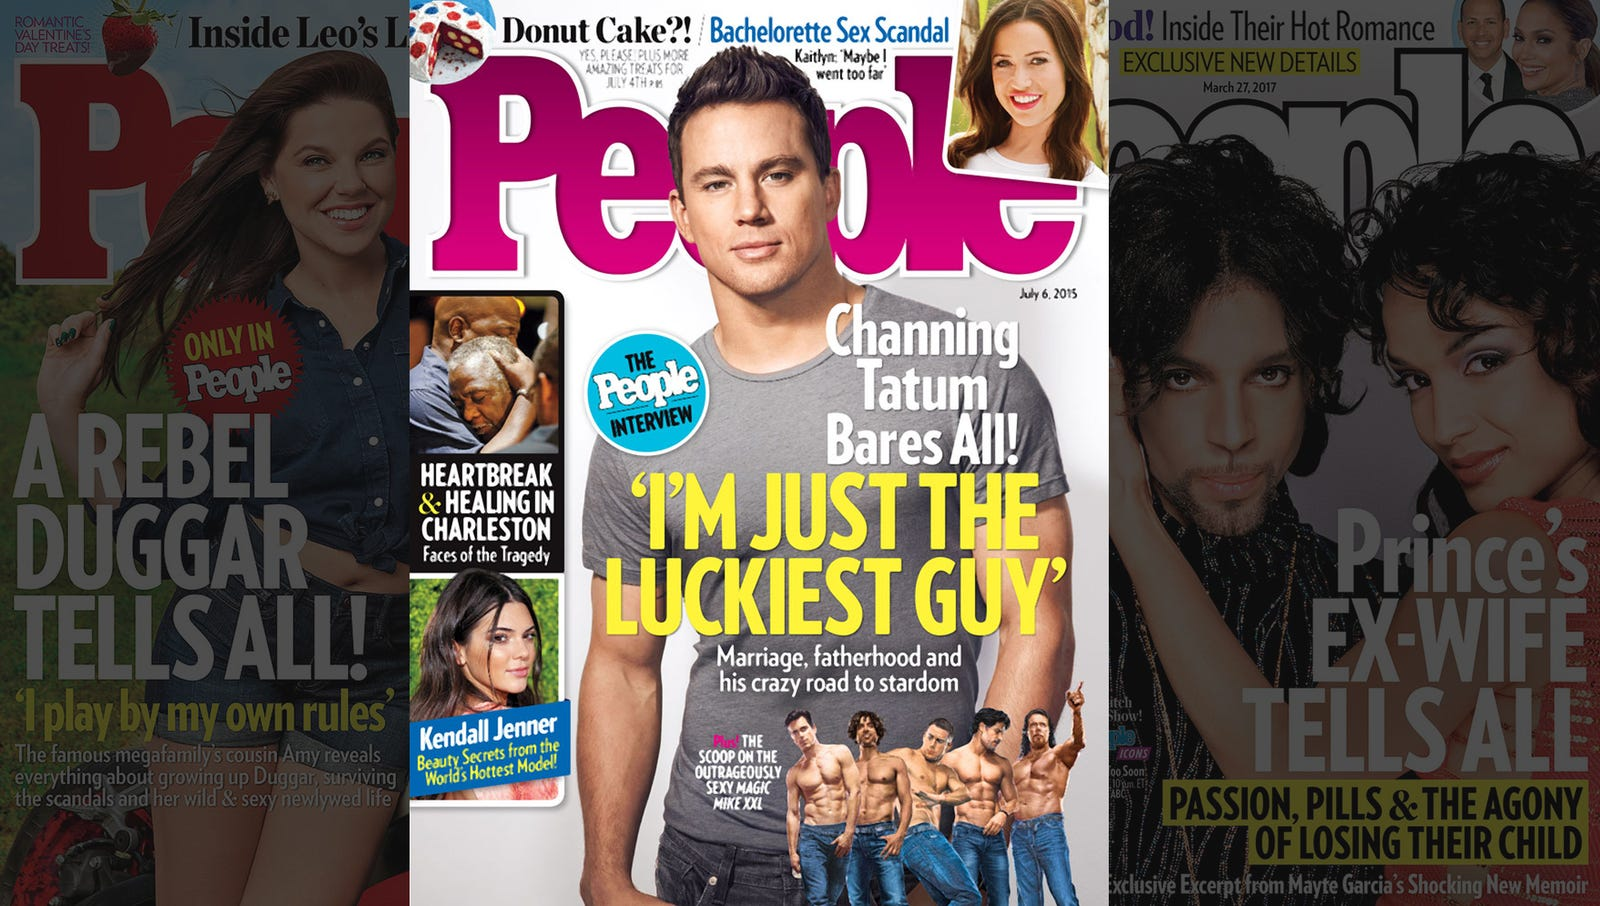 New Study Finds Being On Cover Of 'People' Magazine Best Predictor Of Revealing All